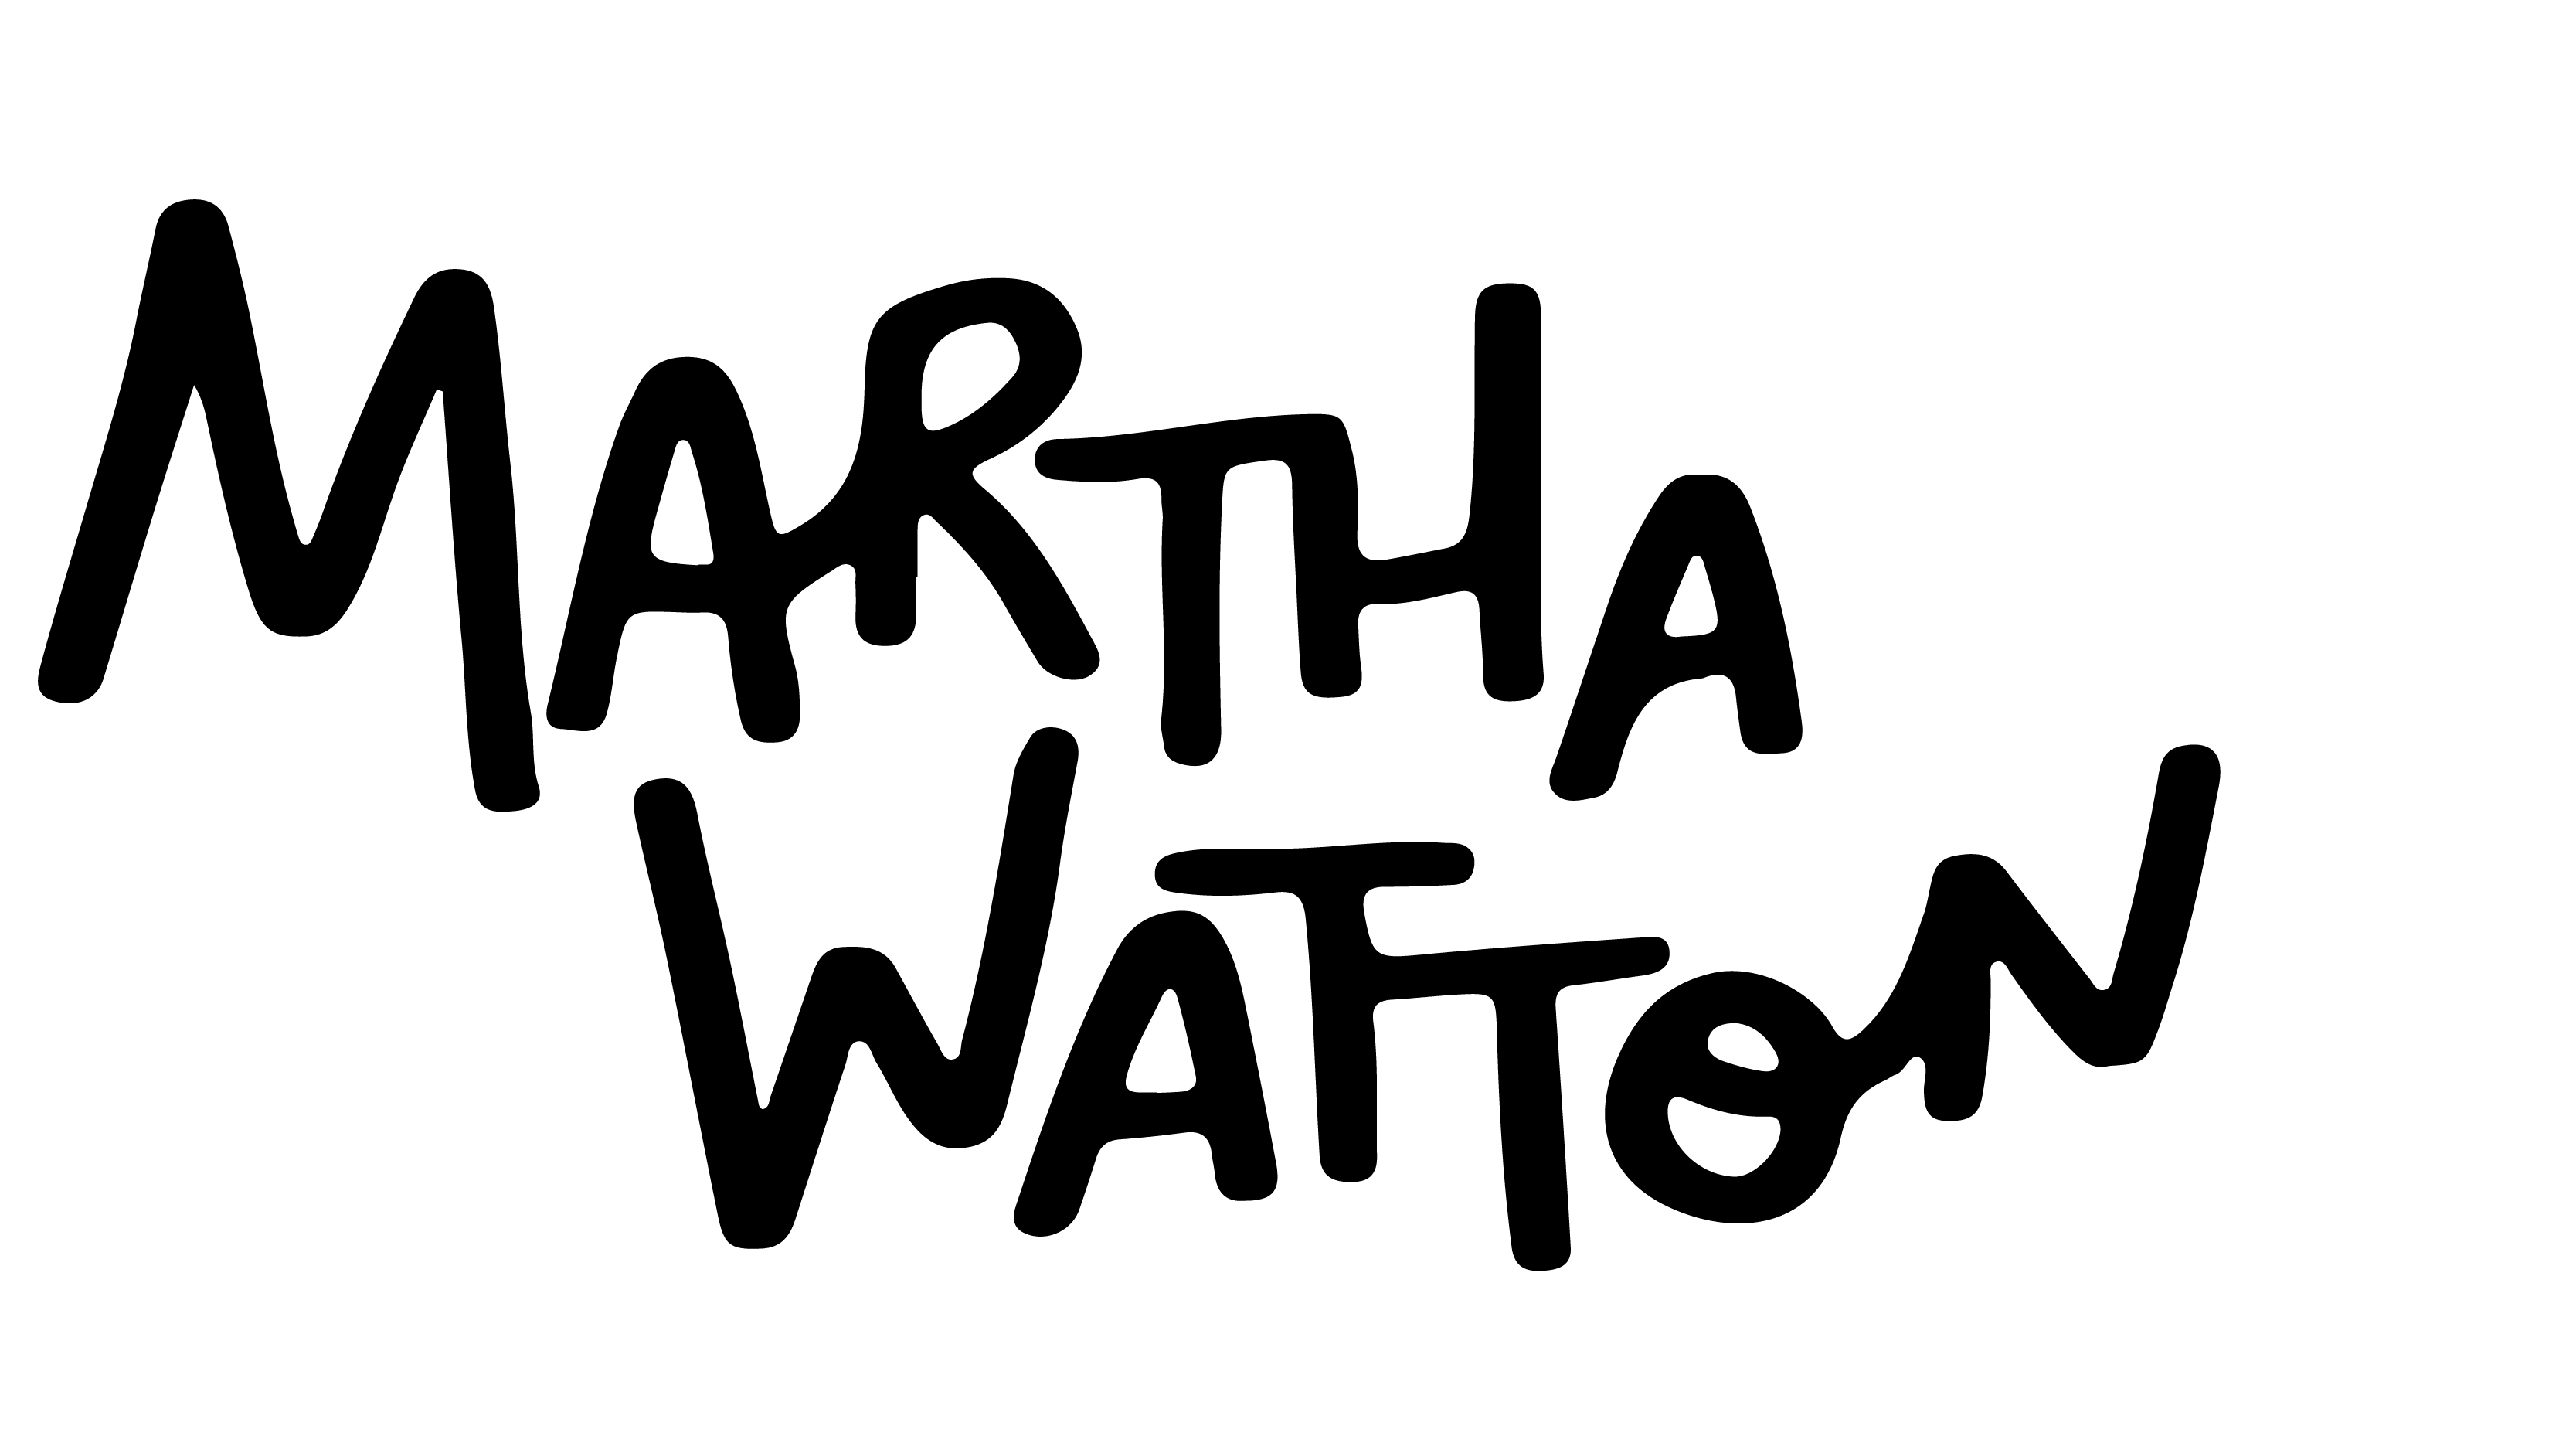 Martha Watton